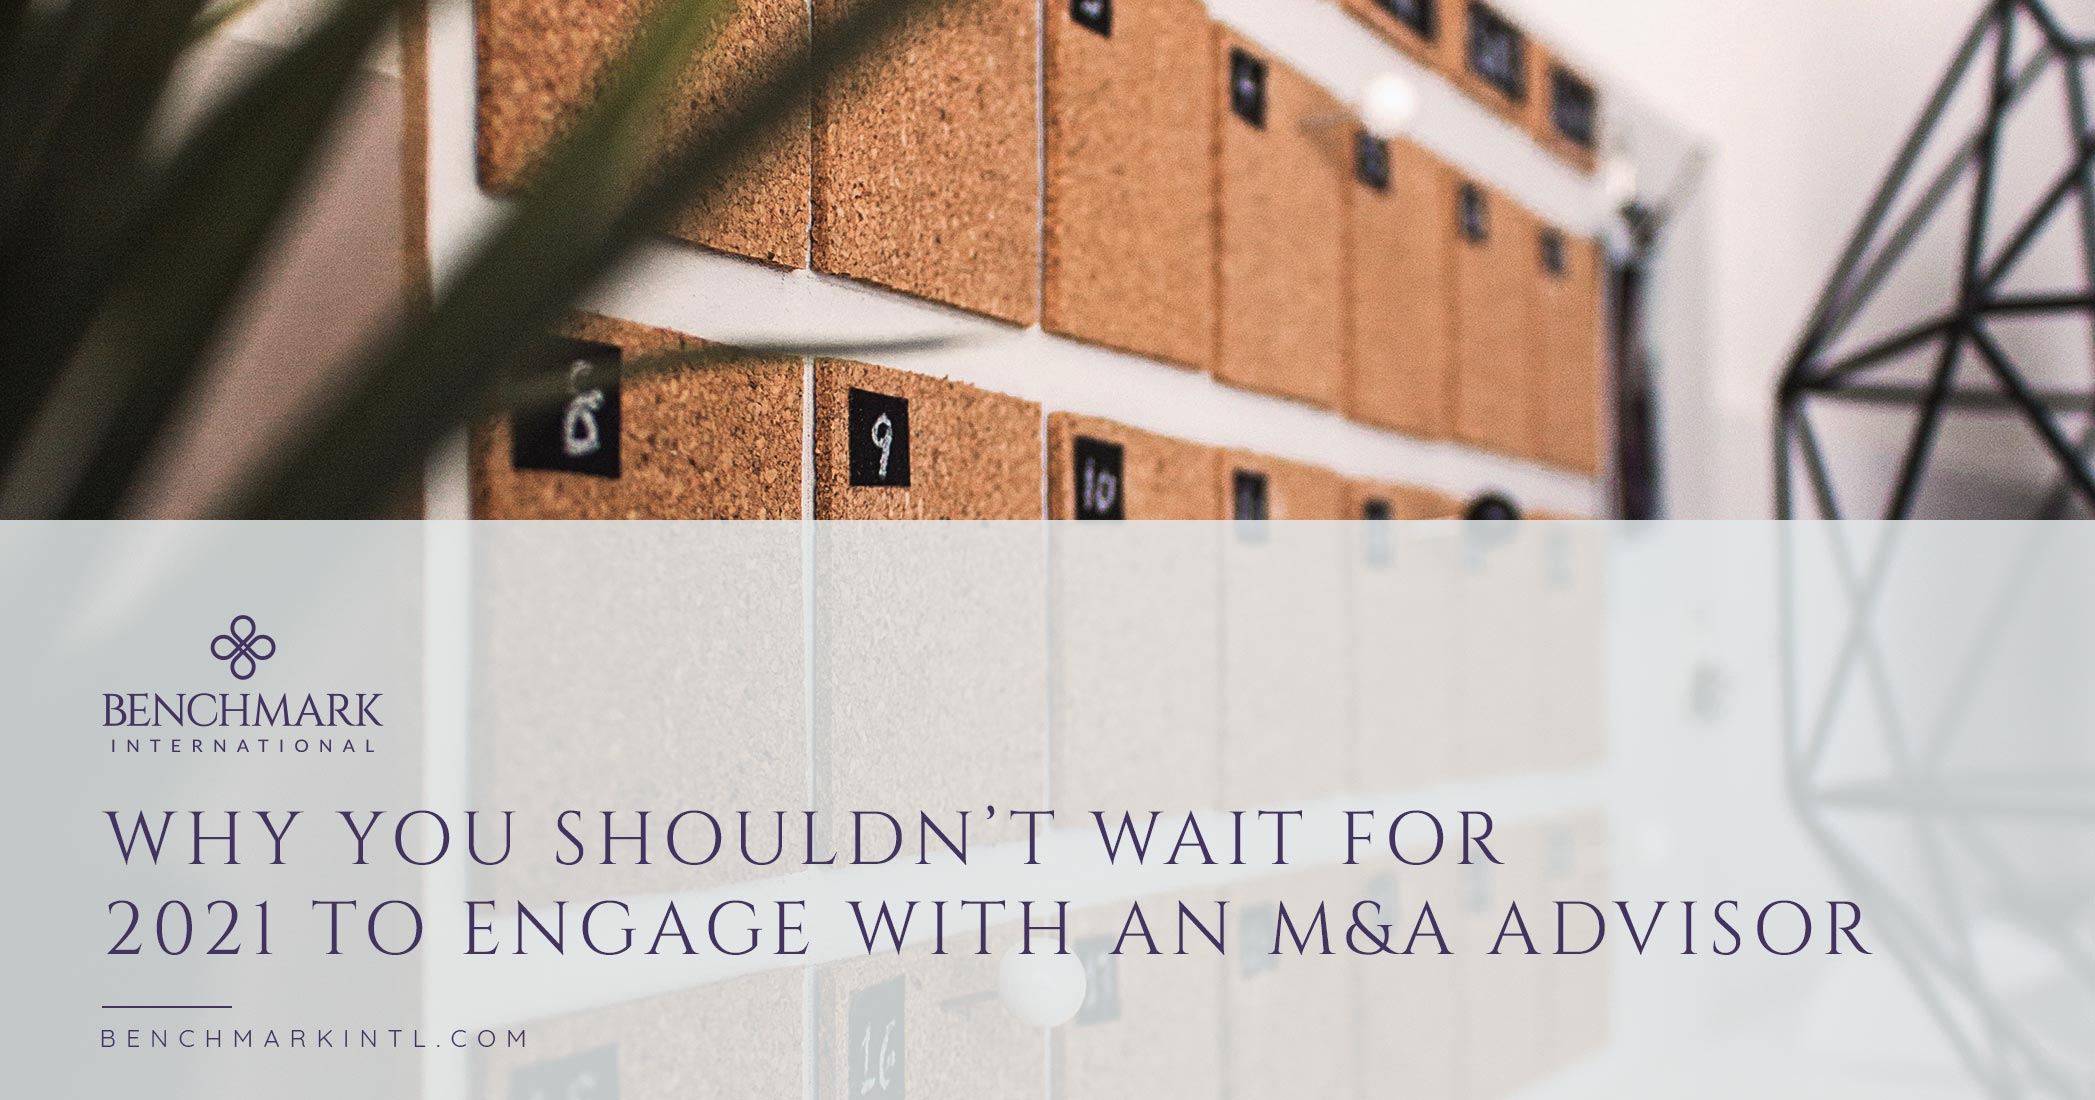 Why You Shouldn't Wait For 2021 To Engage With An M&A Advisor